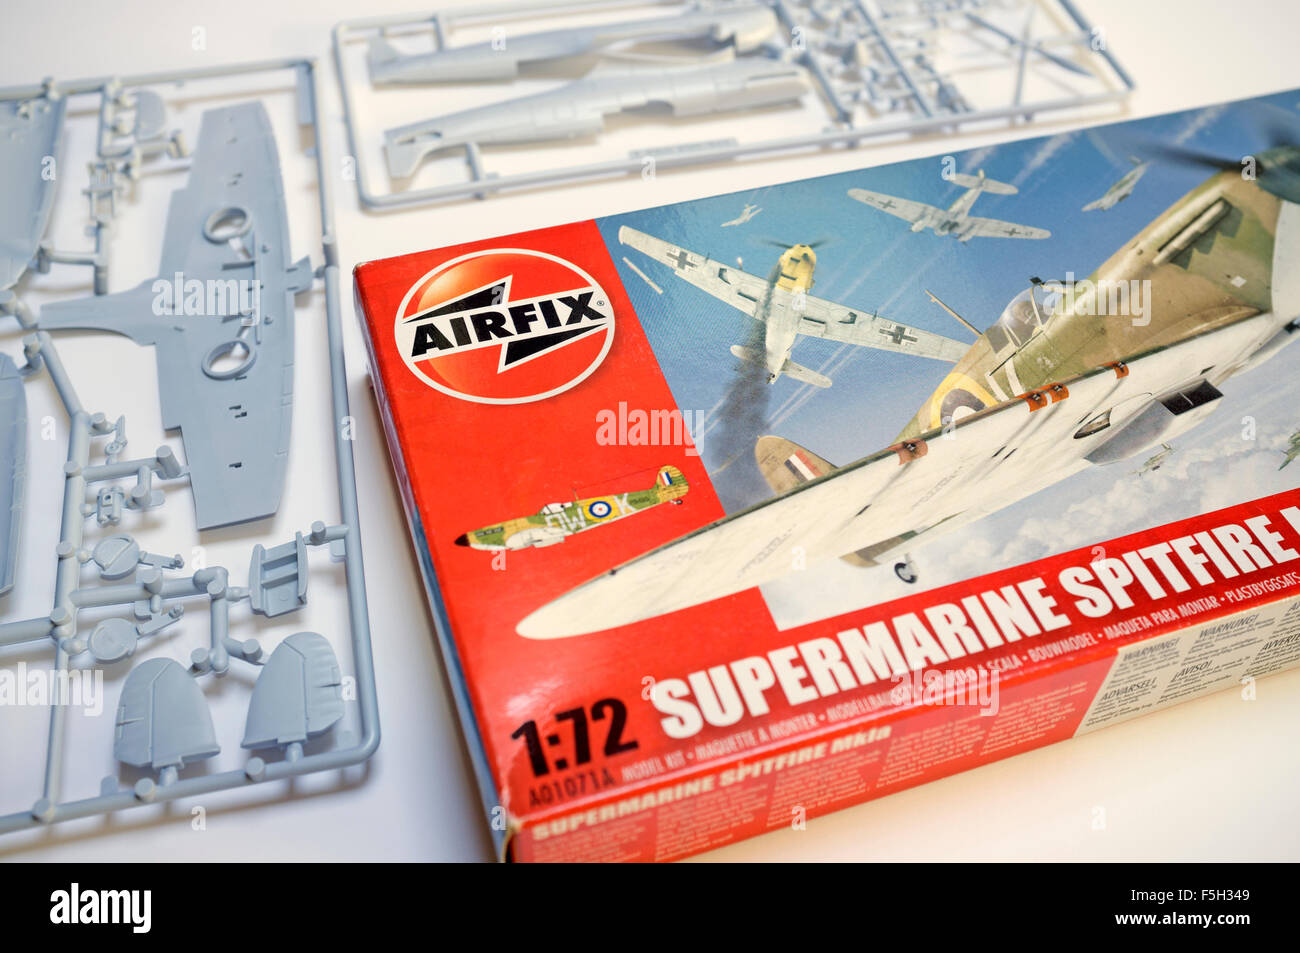 Airfix 1:72 scale Supermarine Spitfire Mk1a 70th Battle of Britain anniversary model - Stock Image